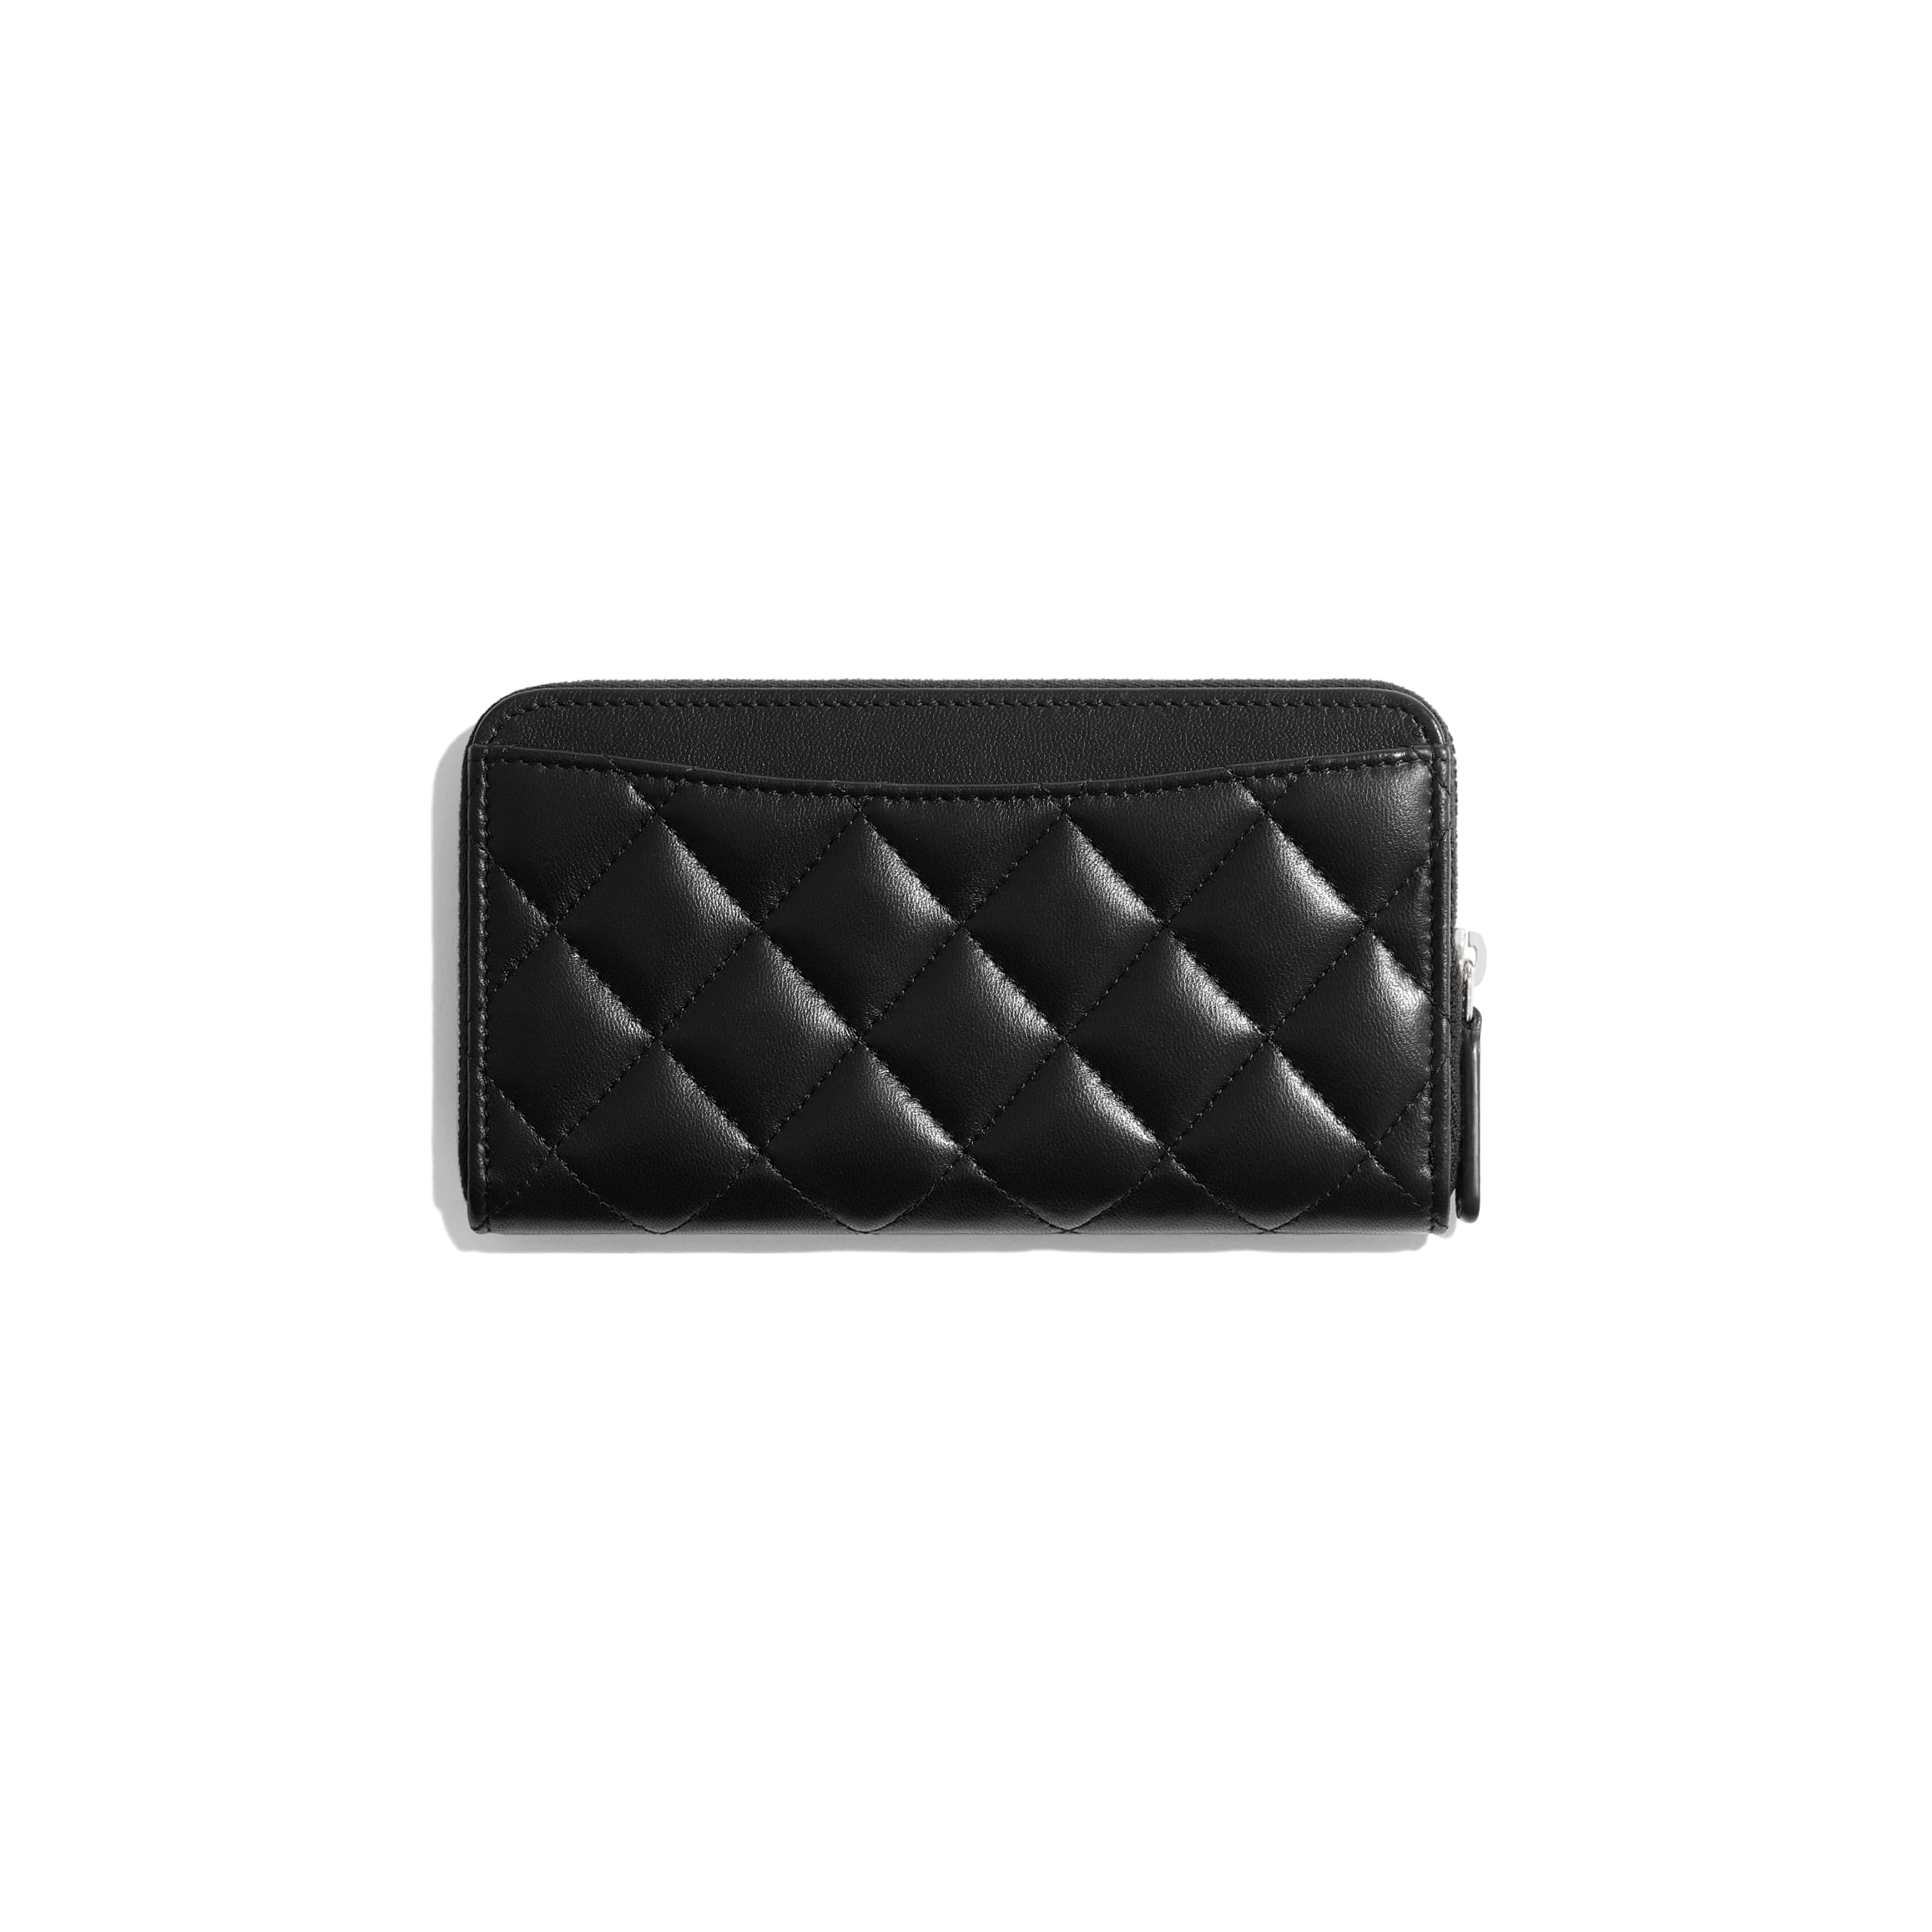 Classic Zipped Wallet - Black - Lambskin - Alternative view - see standard sized version